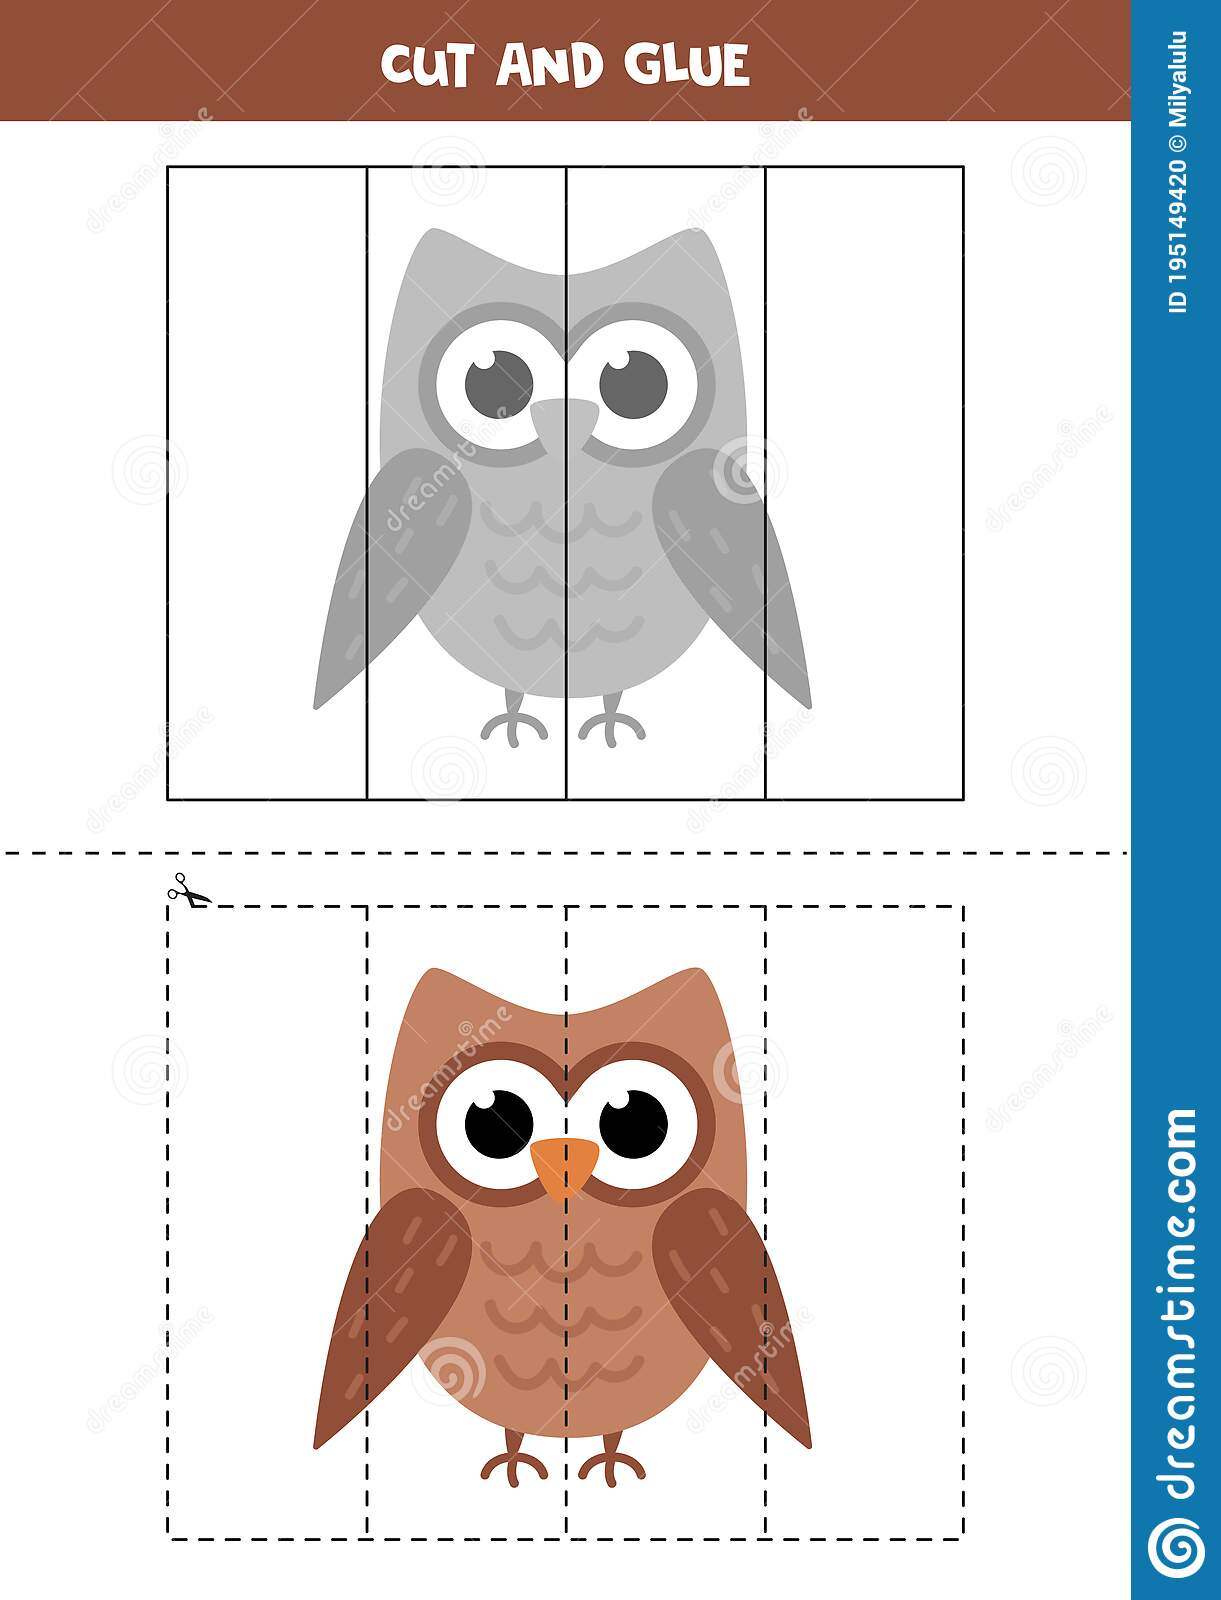 Cut And Glue Game For Kids Cartoon Owl Stock Vector